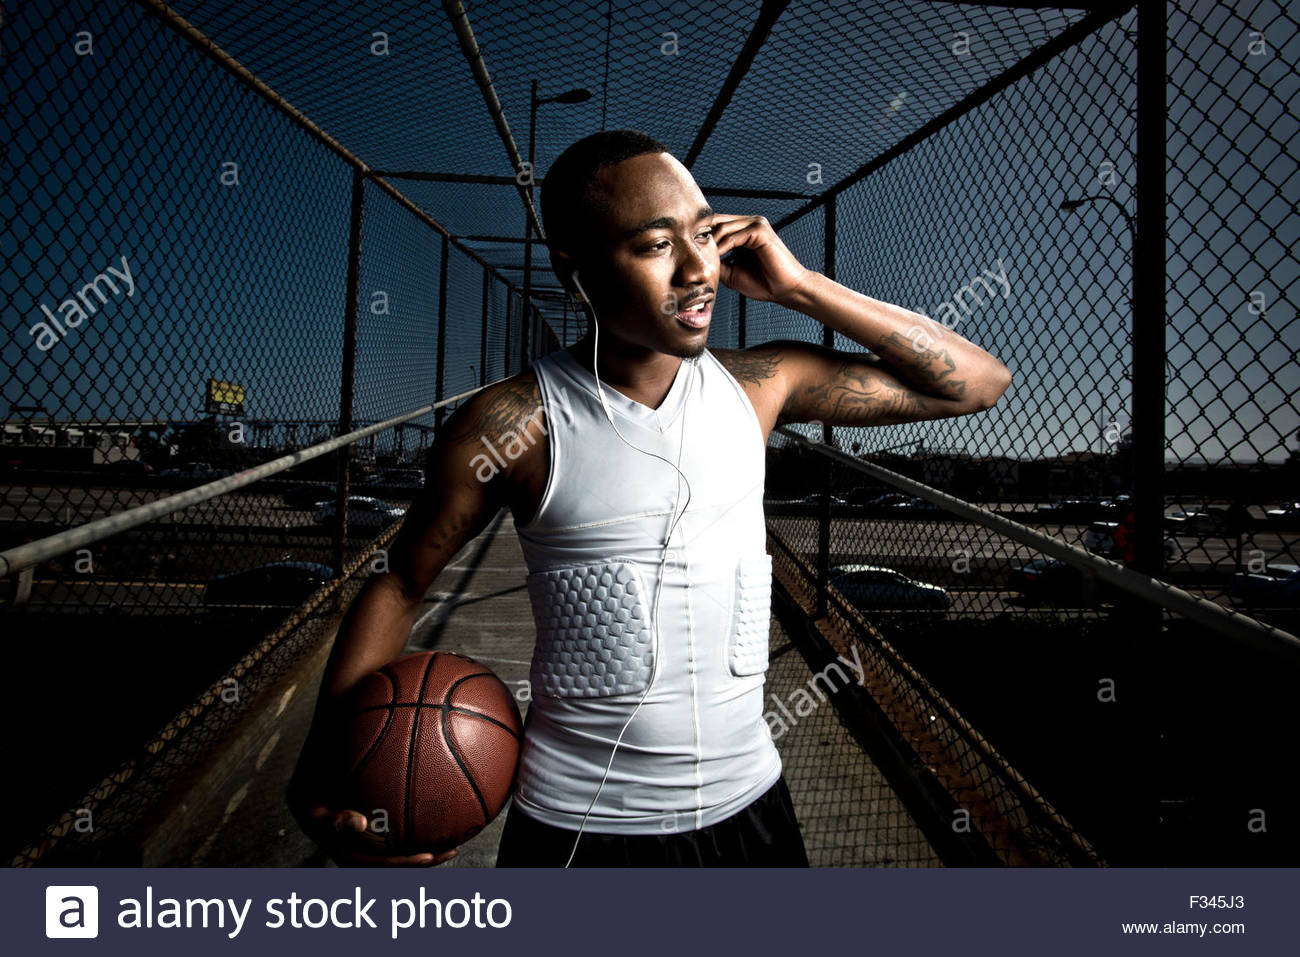 A basketball player walks down a footbridge. - Stock Image